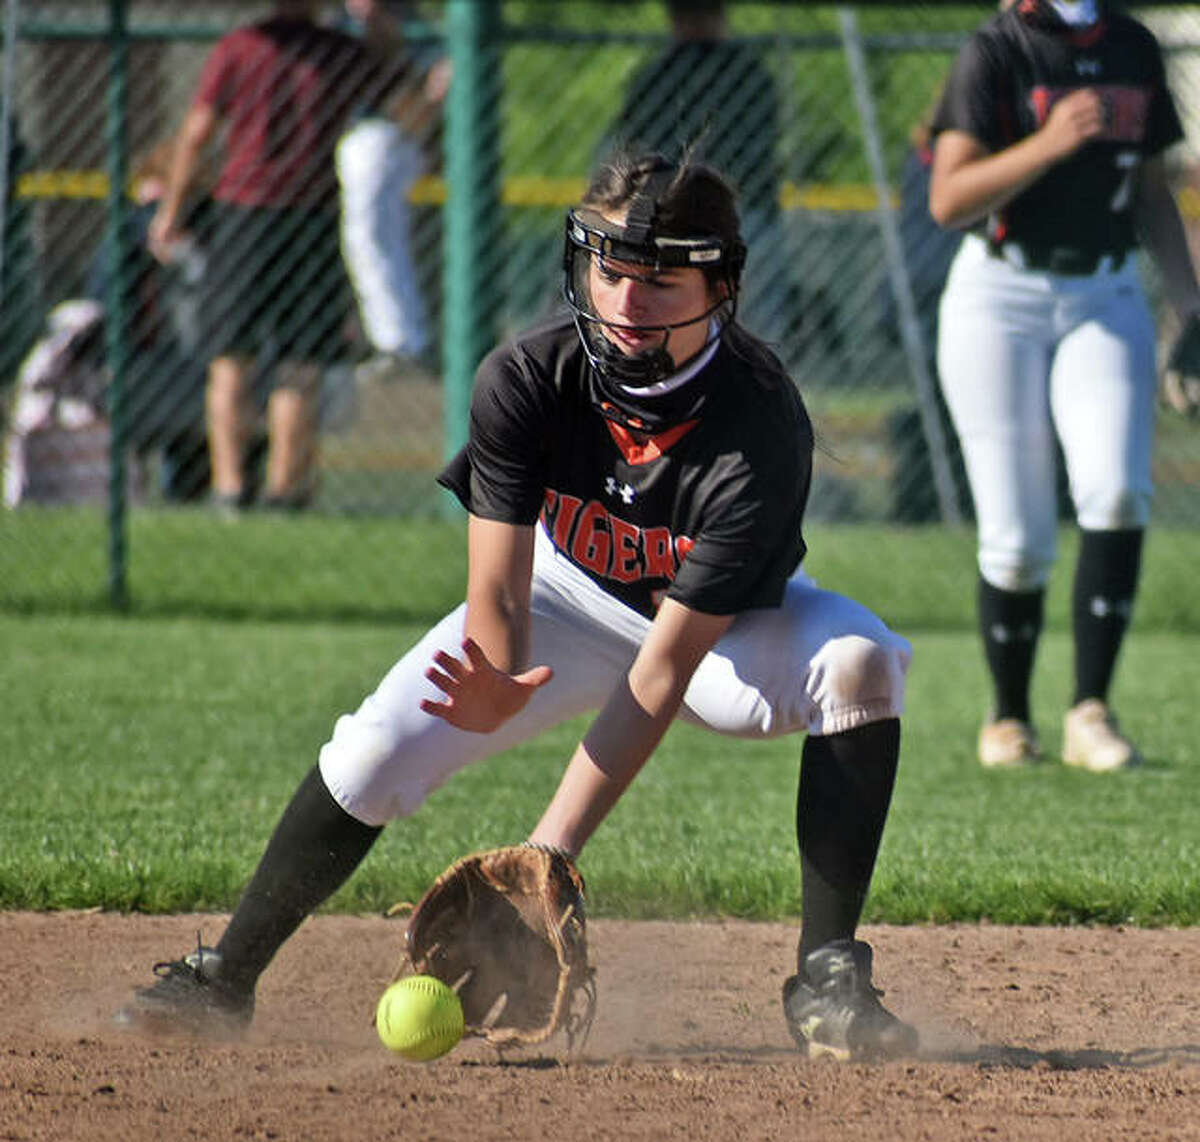 Edwardsville shortstop Tatum VanRyswyk makes a play on a grounder in the third inning against Columbia on Wednesday inside the District 7 Sports Complex.